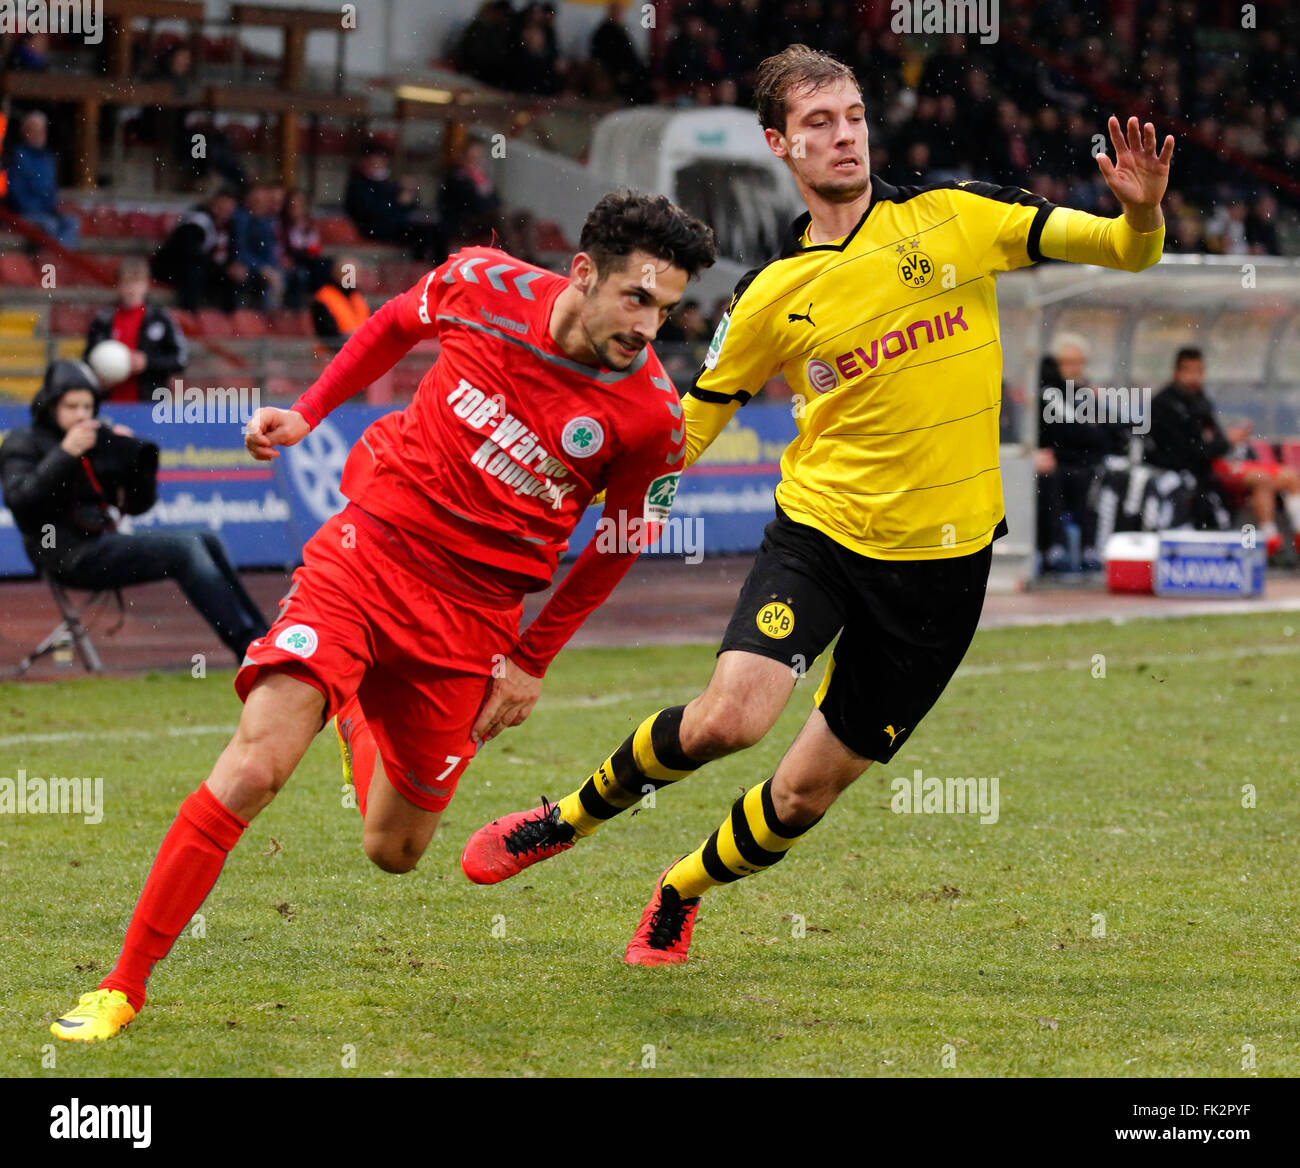 sports, football, Regional League West, 2015/2016, Rot Weiss Oberhausen versus Borussia Dortmund U23 3:1, Stadium - Stock Image